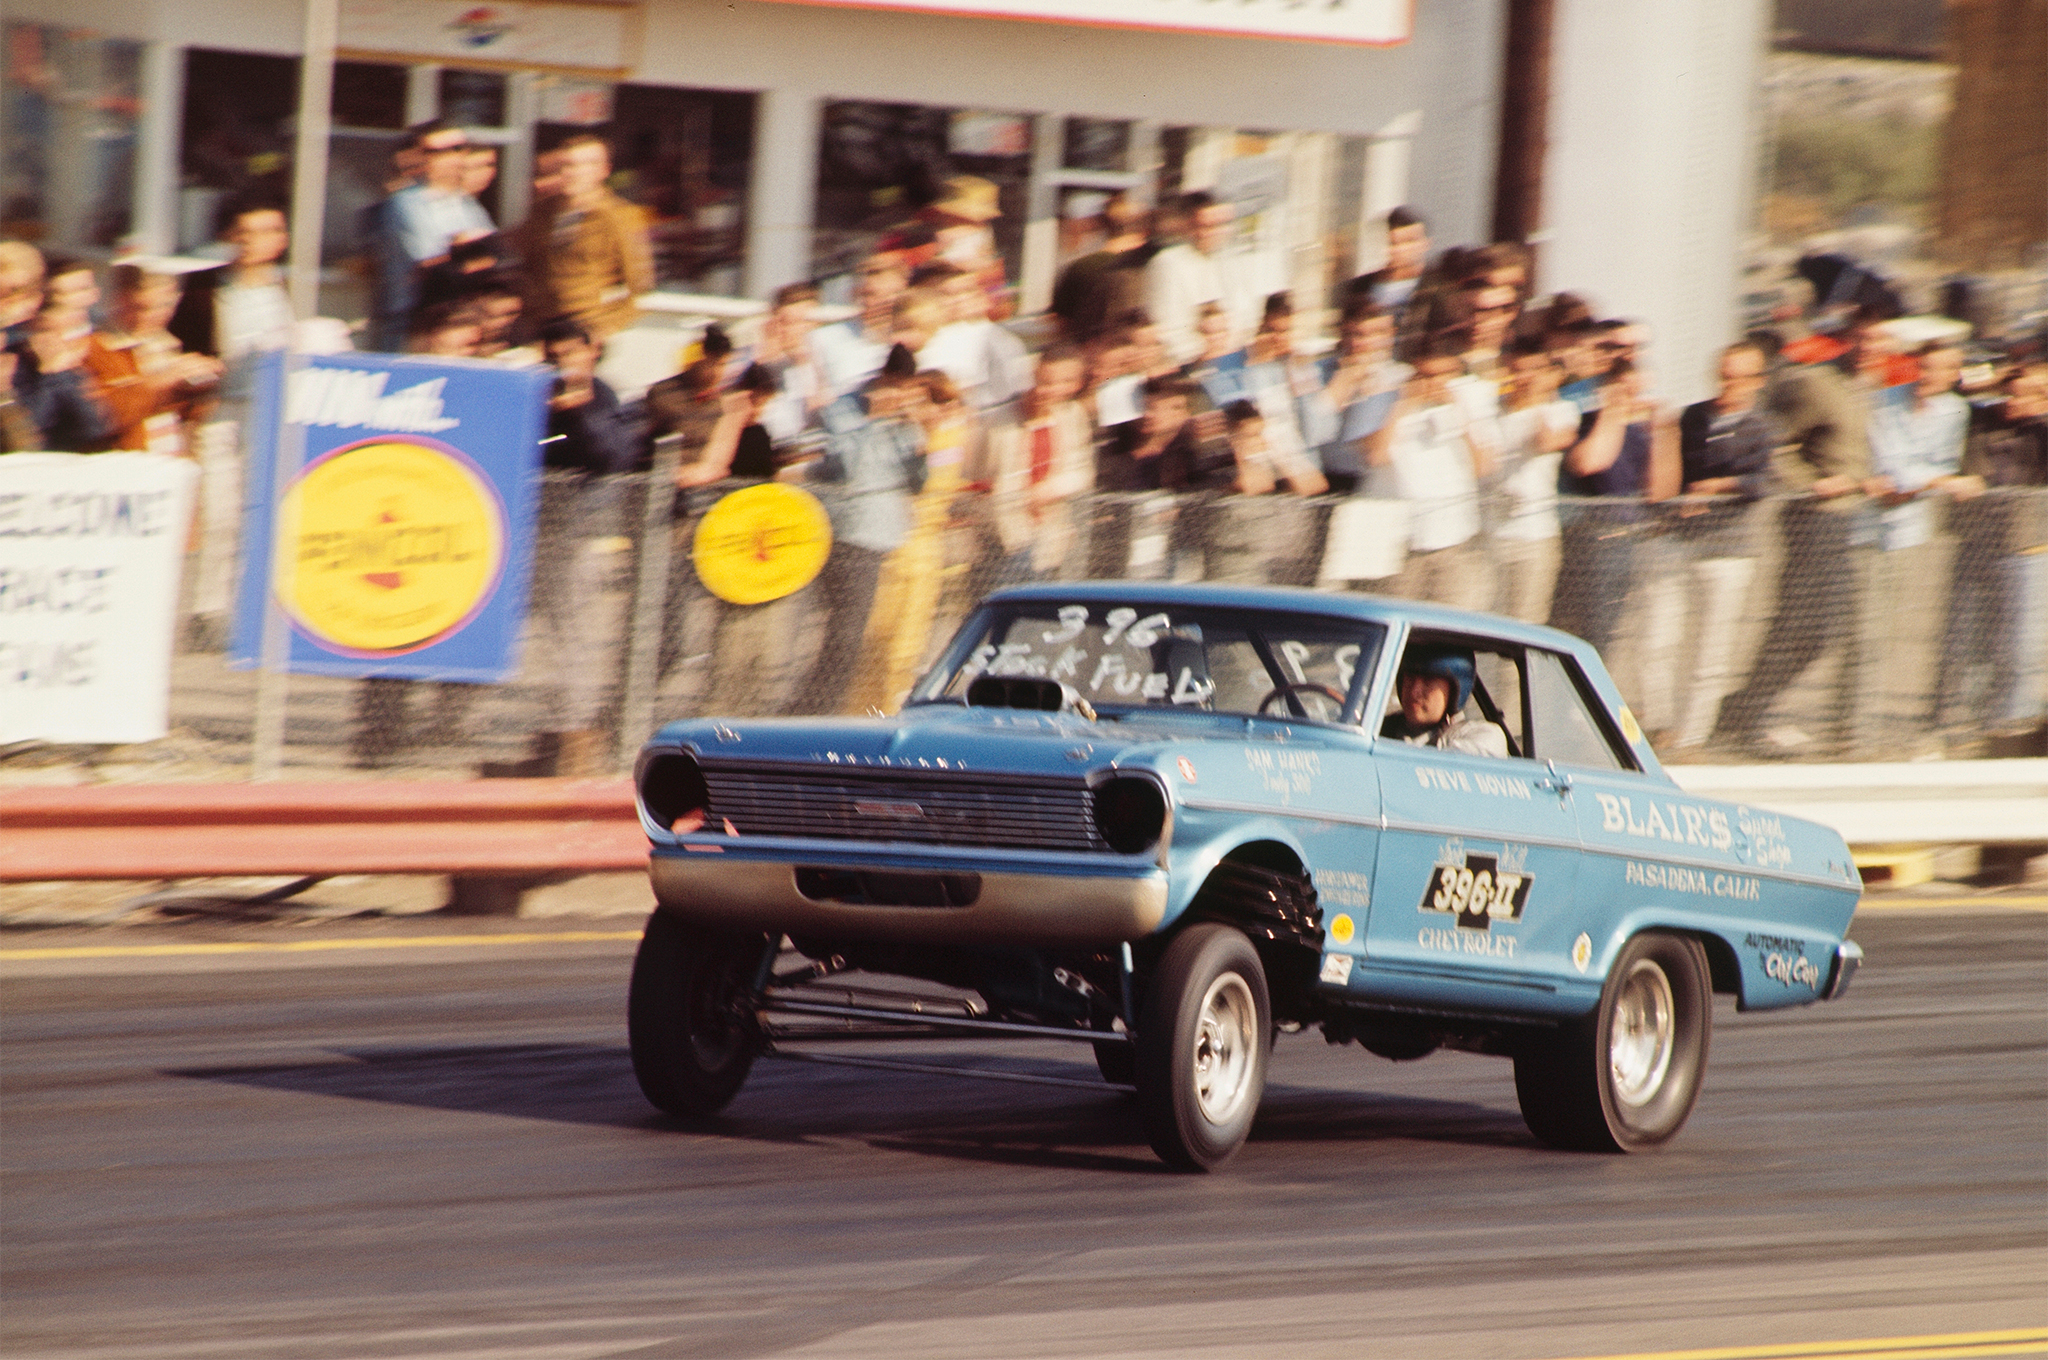 Steve Bovan is best known as one of the pioneering A/FX drag racers. His Chevy II ran a blown big-block on alcohol and was one of the first, if not the first, Chevy to follow Jack Chrisman's lead by running an alcohol or nitro-fed supercharged engine set back in the chassis of a late-model car. These early FX cars were the infancy of what became the Funny Car class.